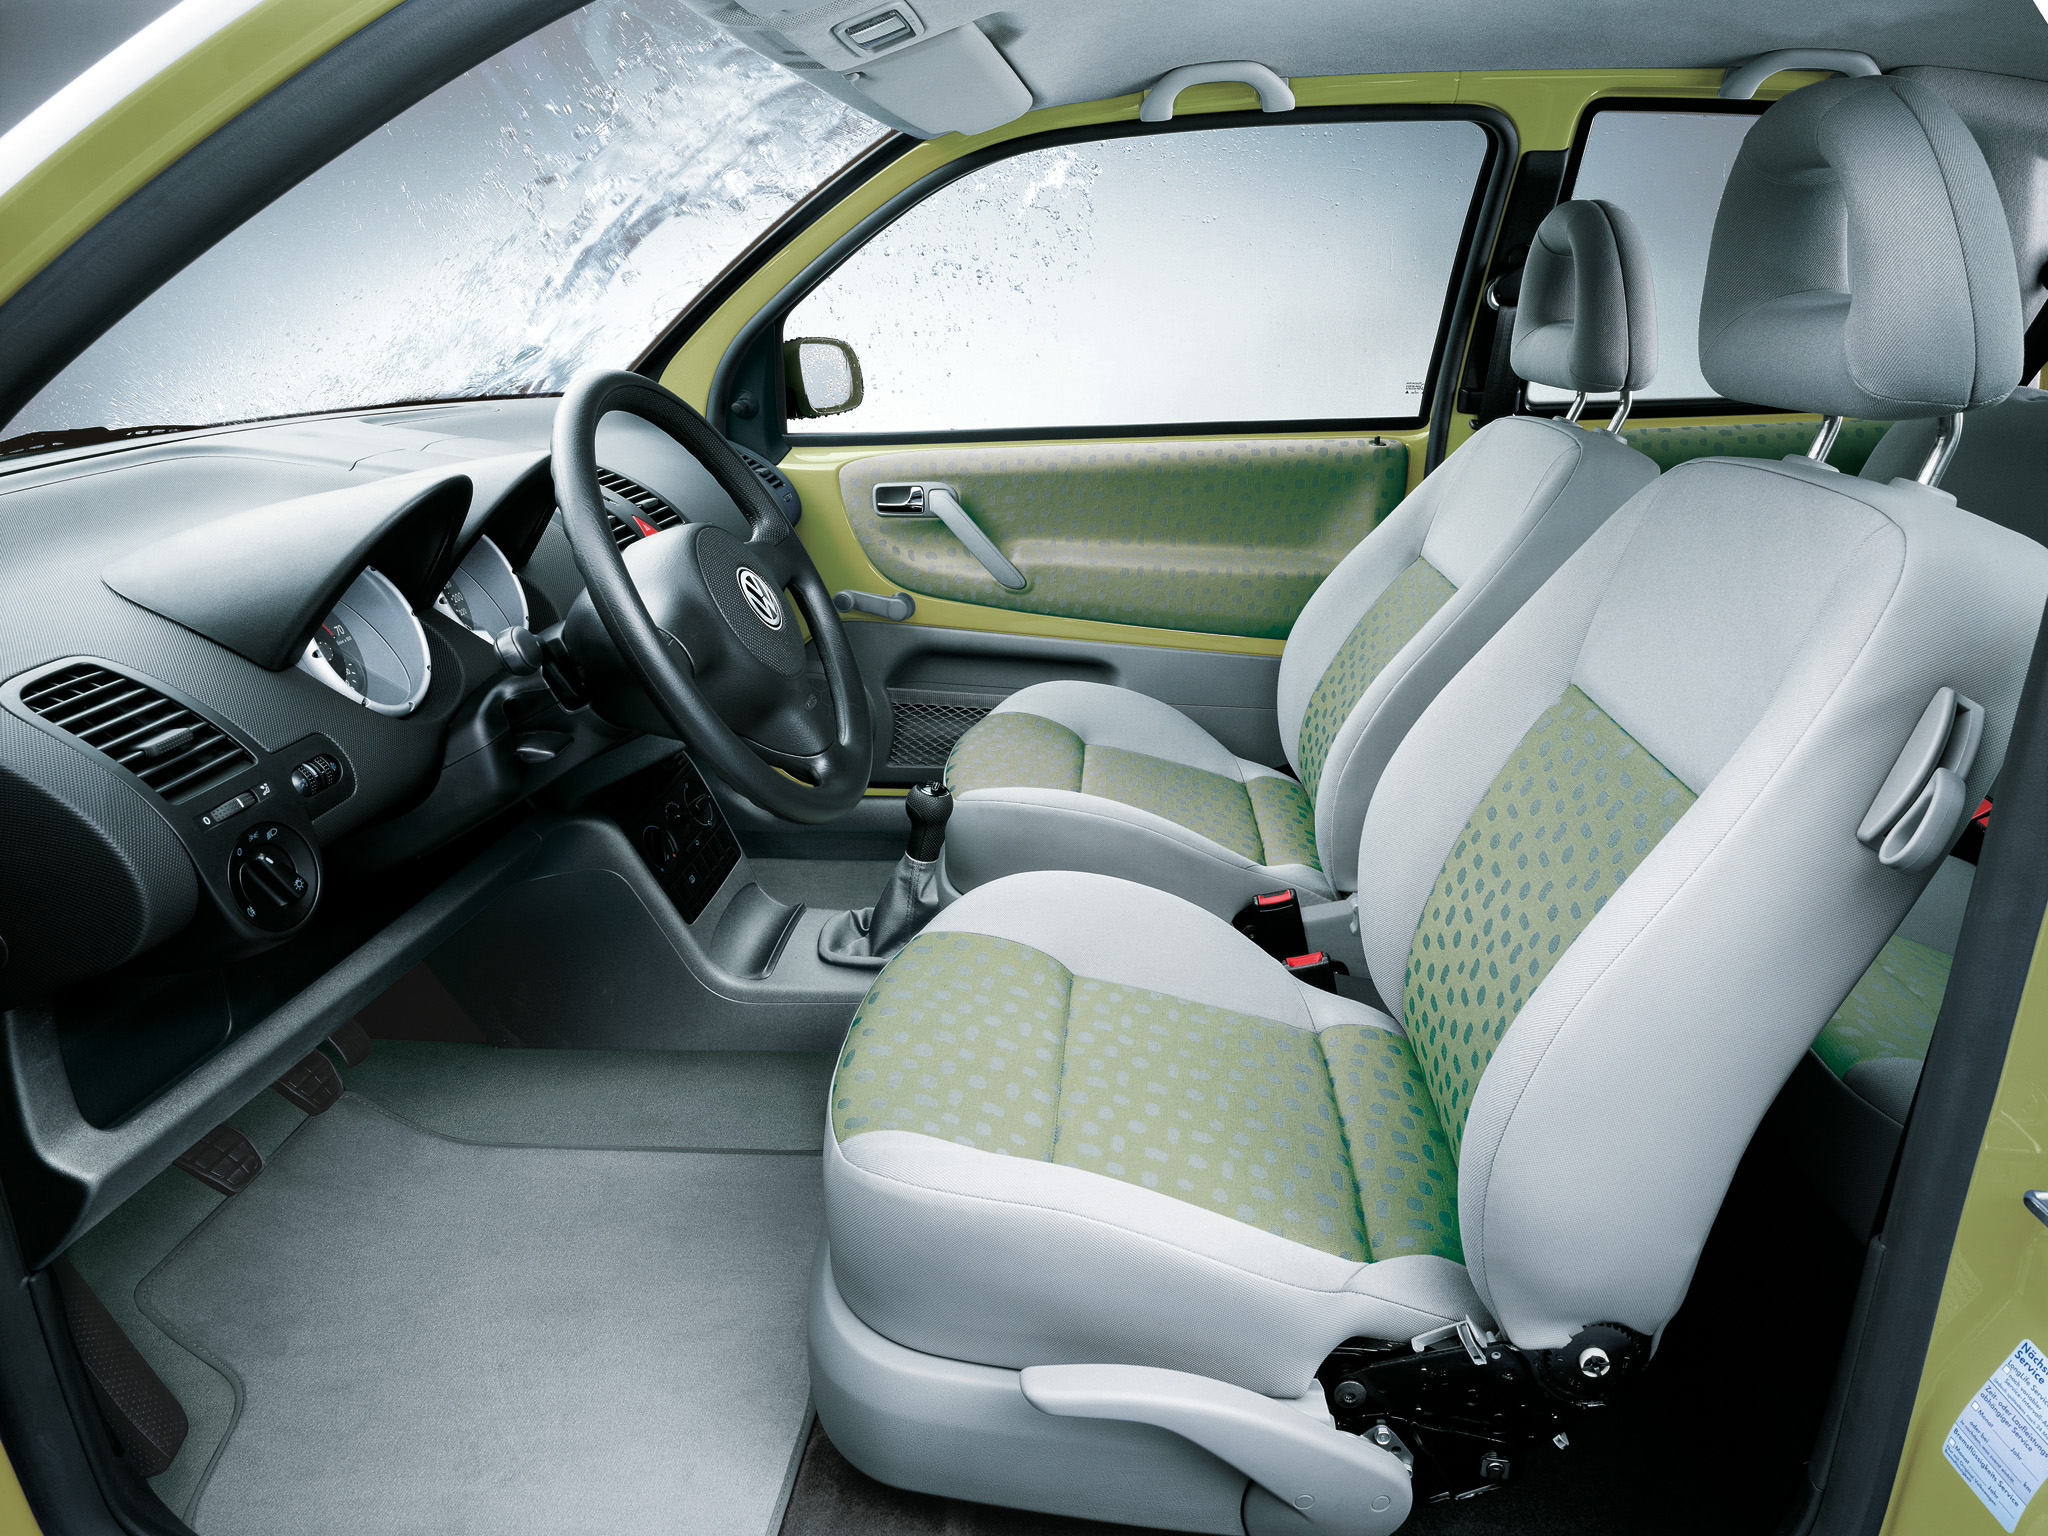 http://auto-database.com/image/volkswagen-lupo-6x-2002-images-37016.jpg